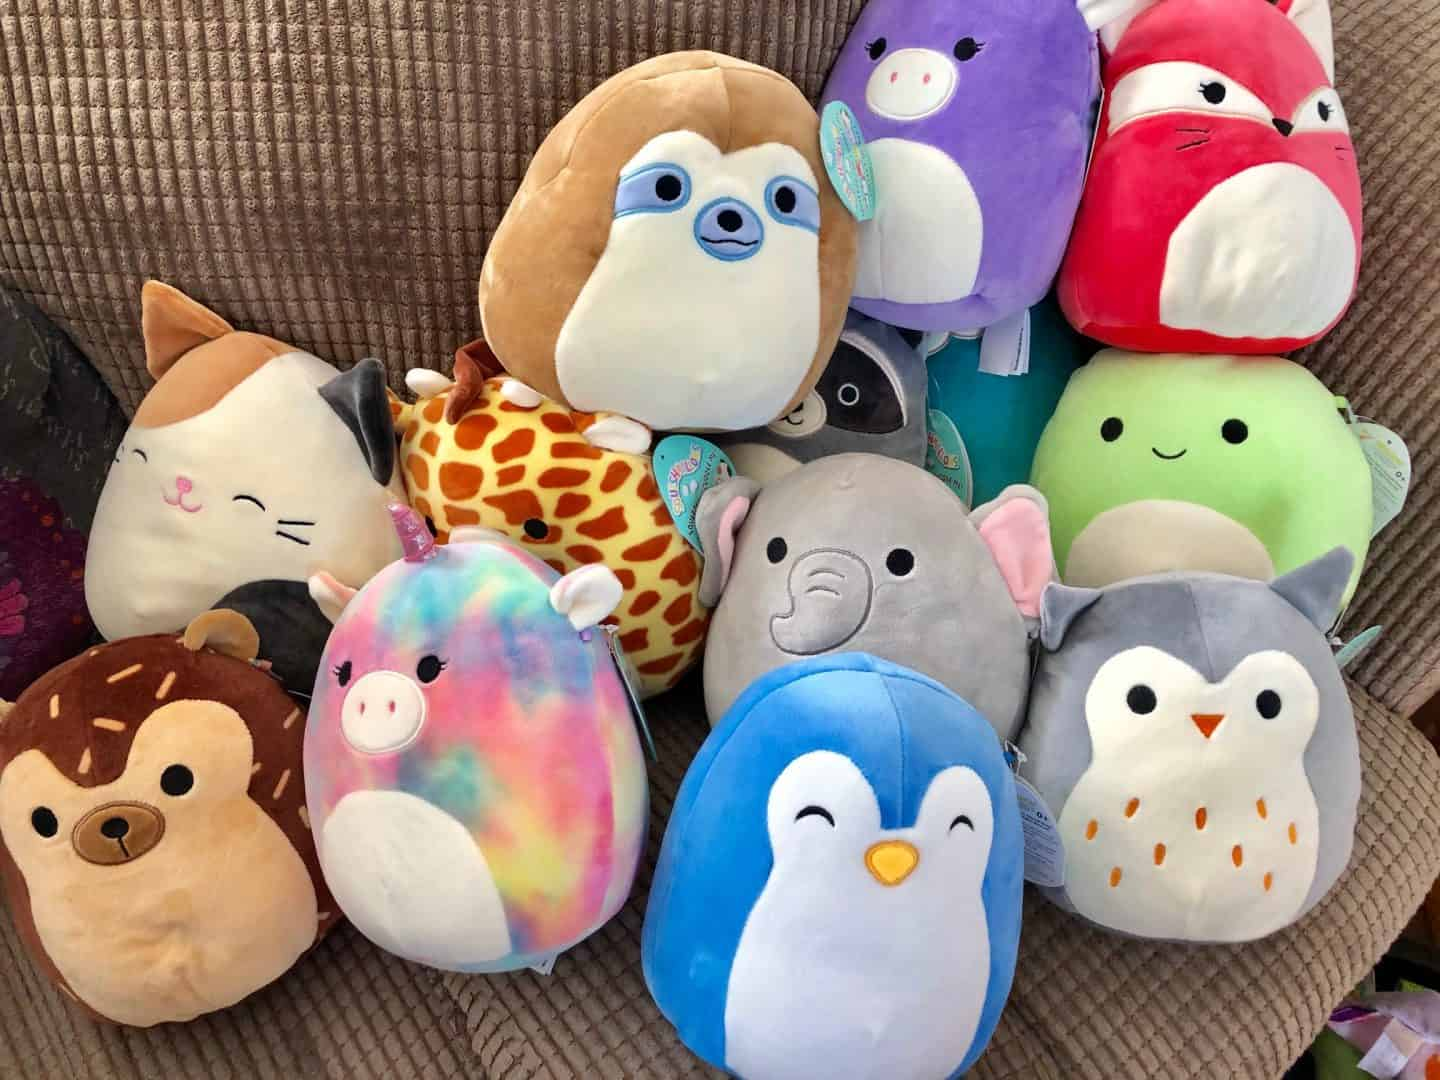 The-complete-collection-of-Squishmallows